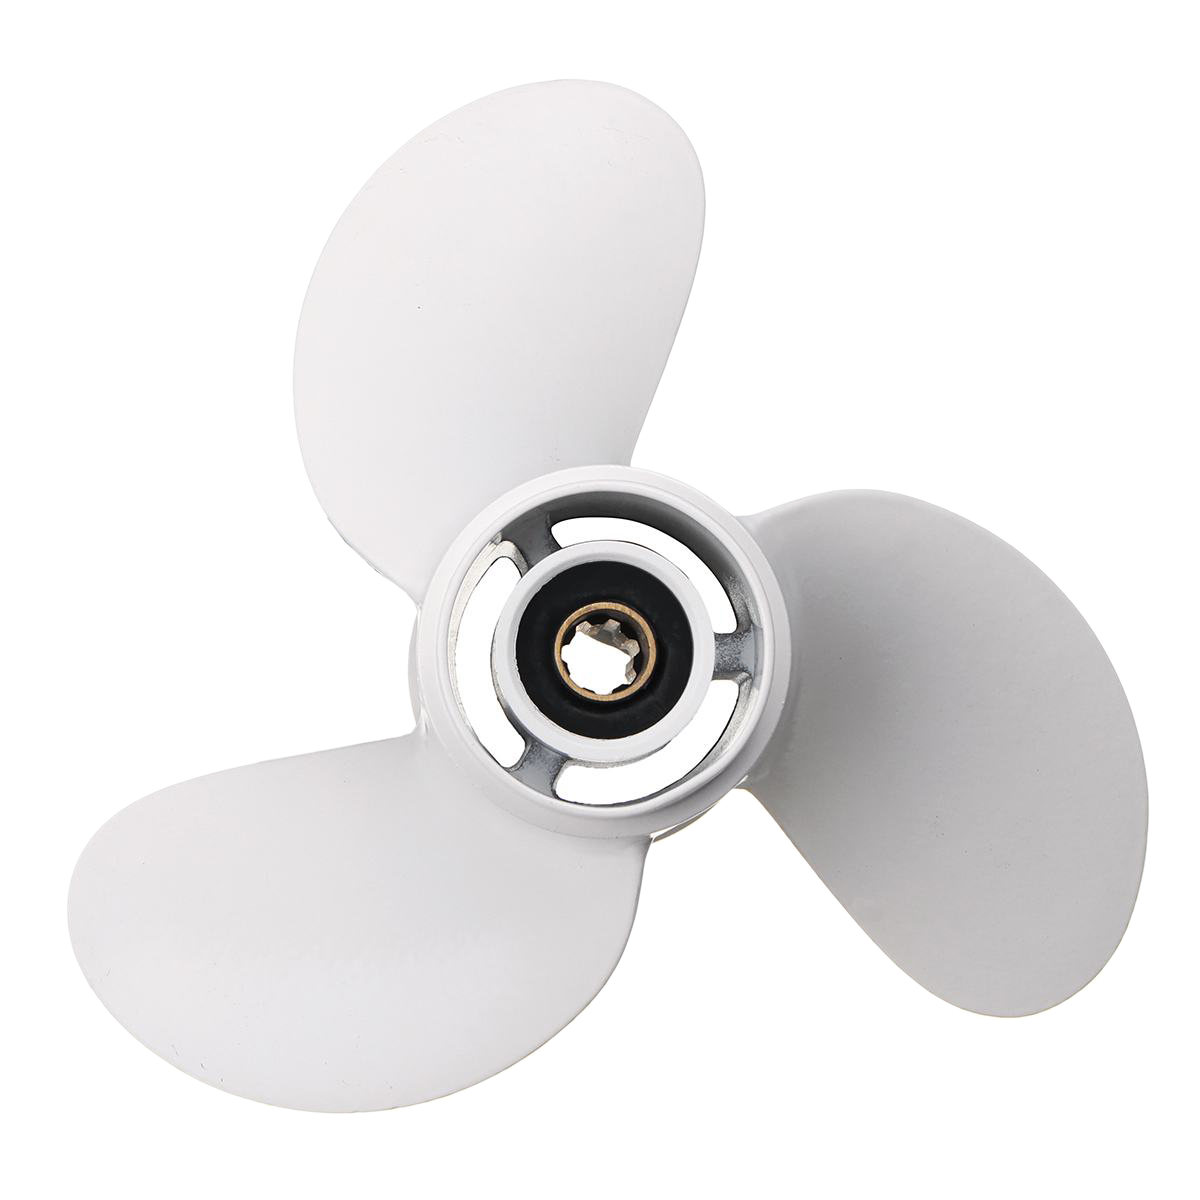 6G1-45941-00-El For Yamaha 6-8Hp 8 1/2 X 8 1/2 Boat Outboard Propeller White Aluminum Alloy 7 Spline Tooths R Rotation 3 Blade